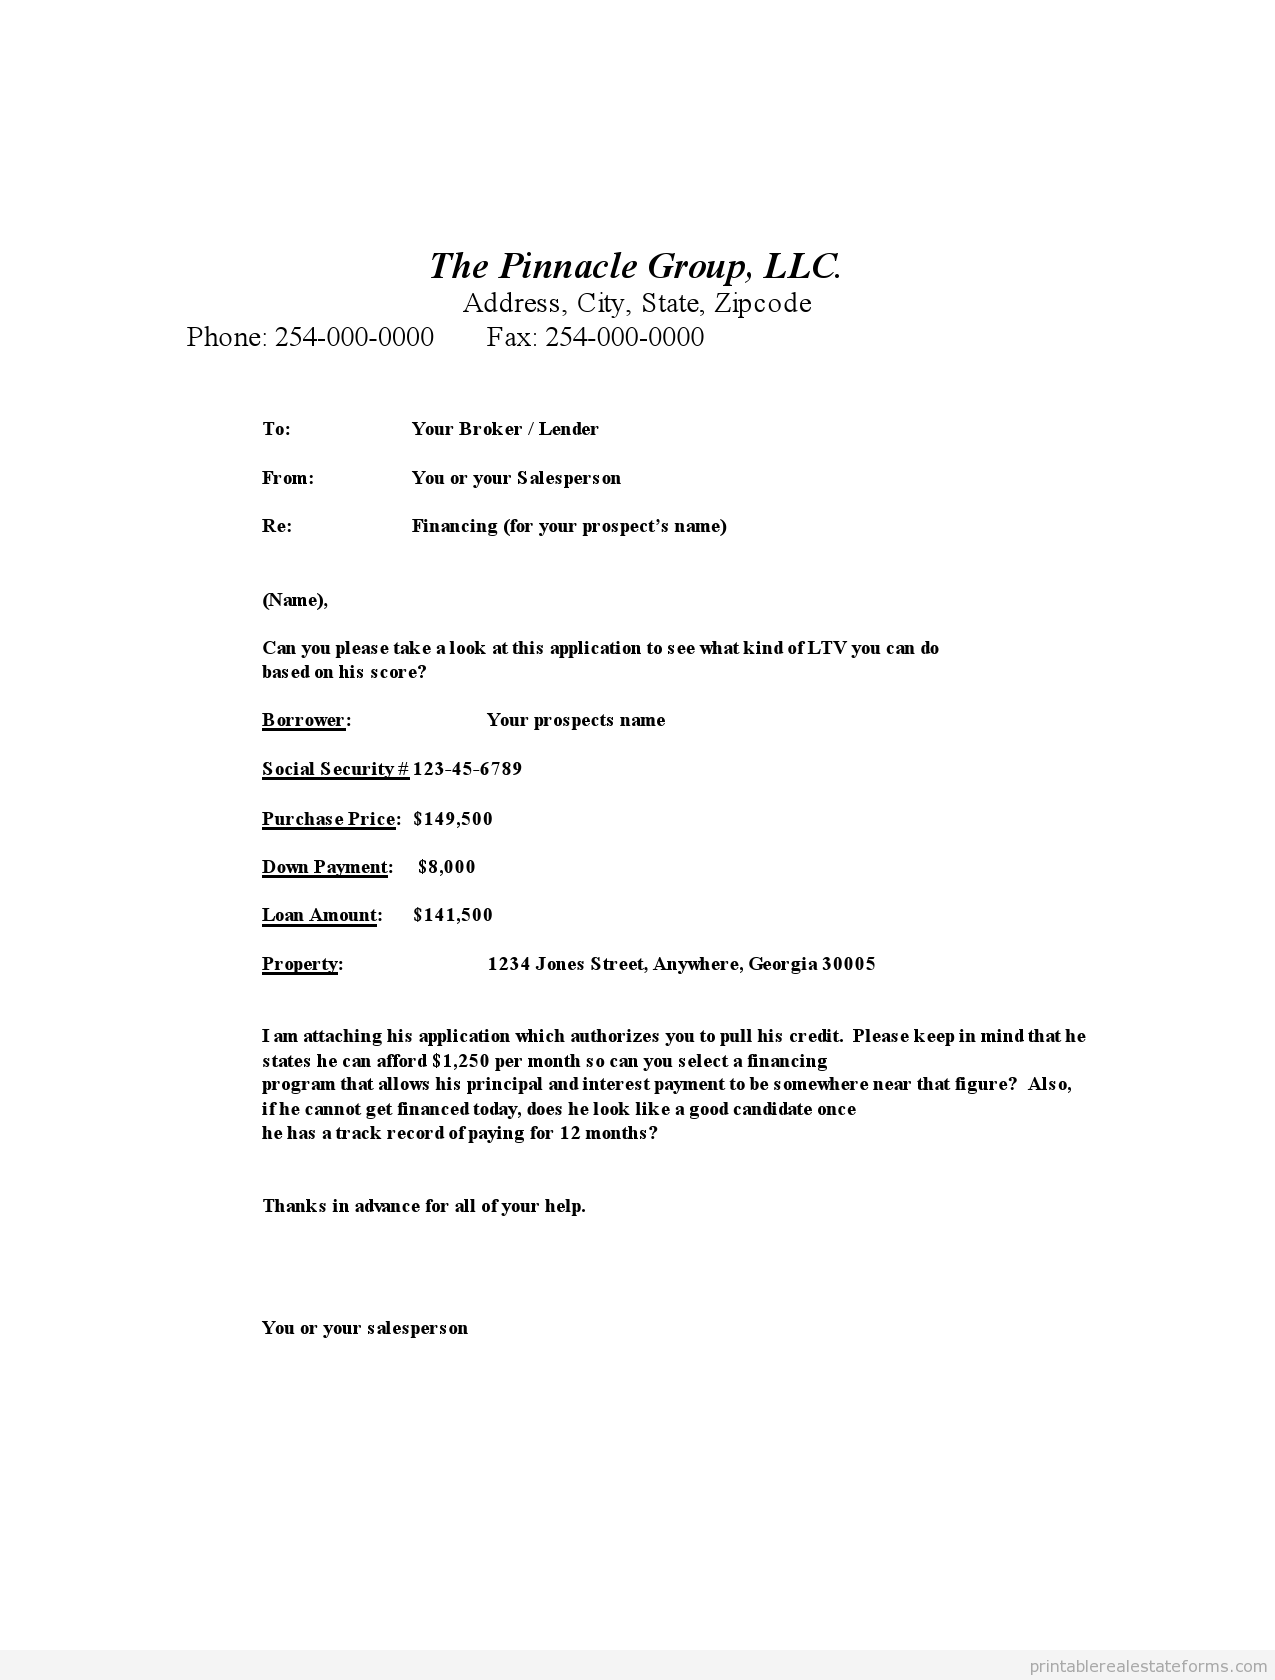 Sample Printable Mortgage Broker Submission 2 Form